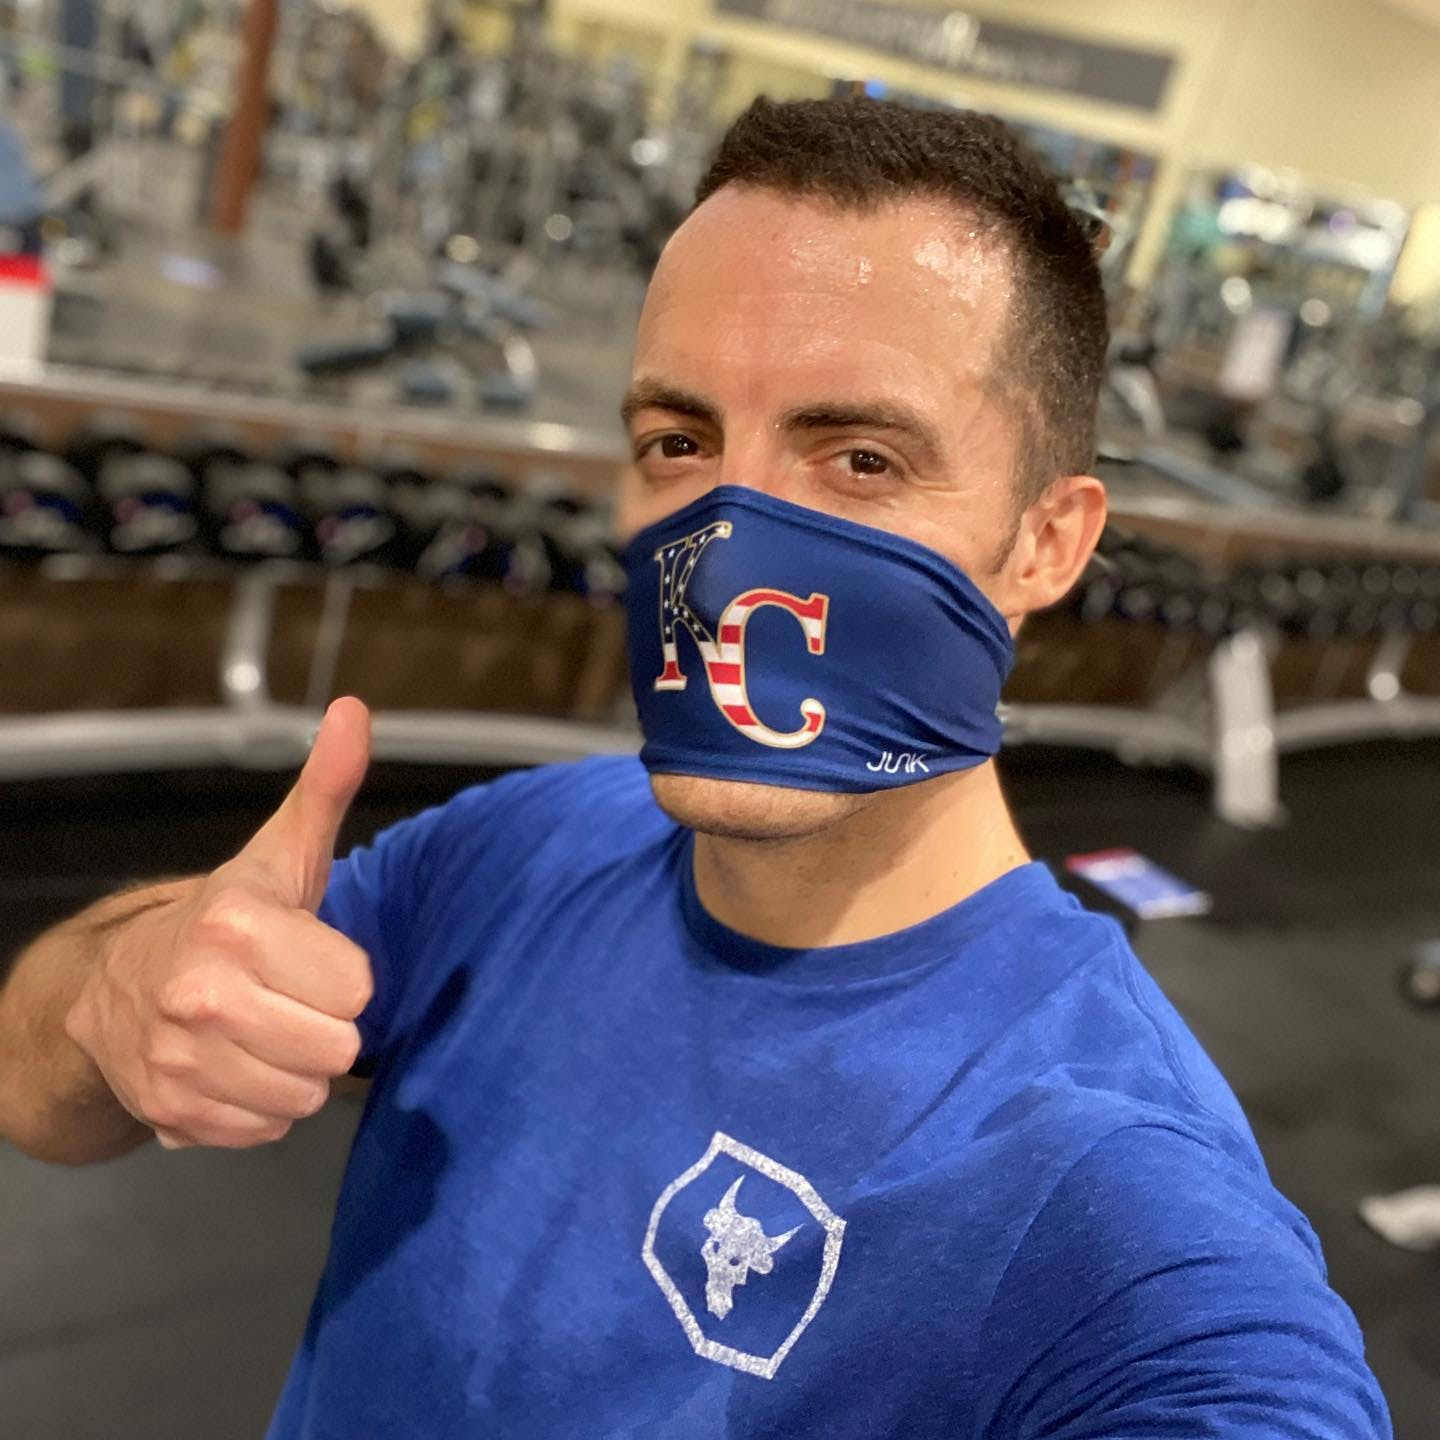 blue shirt thumbs up kc mask